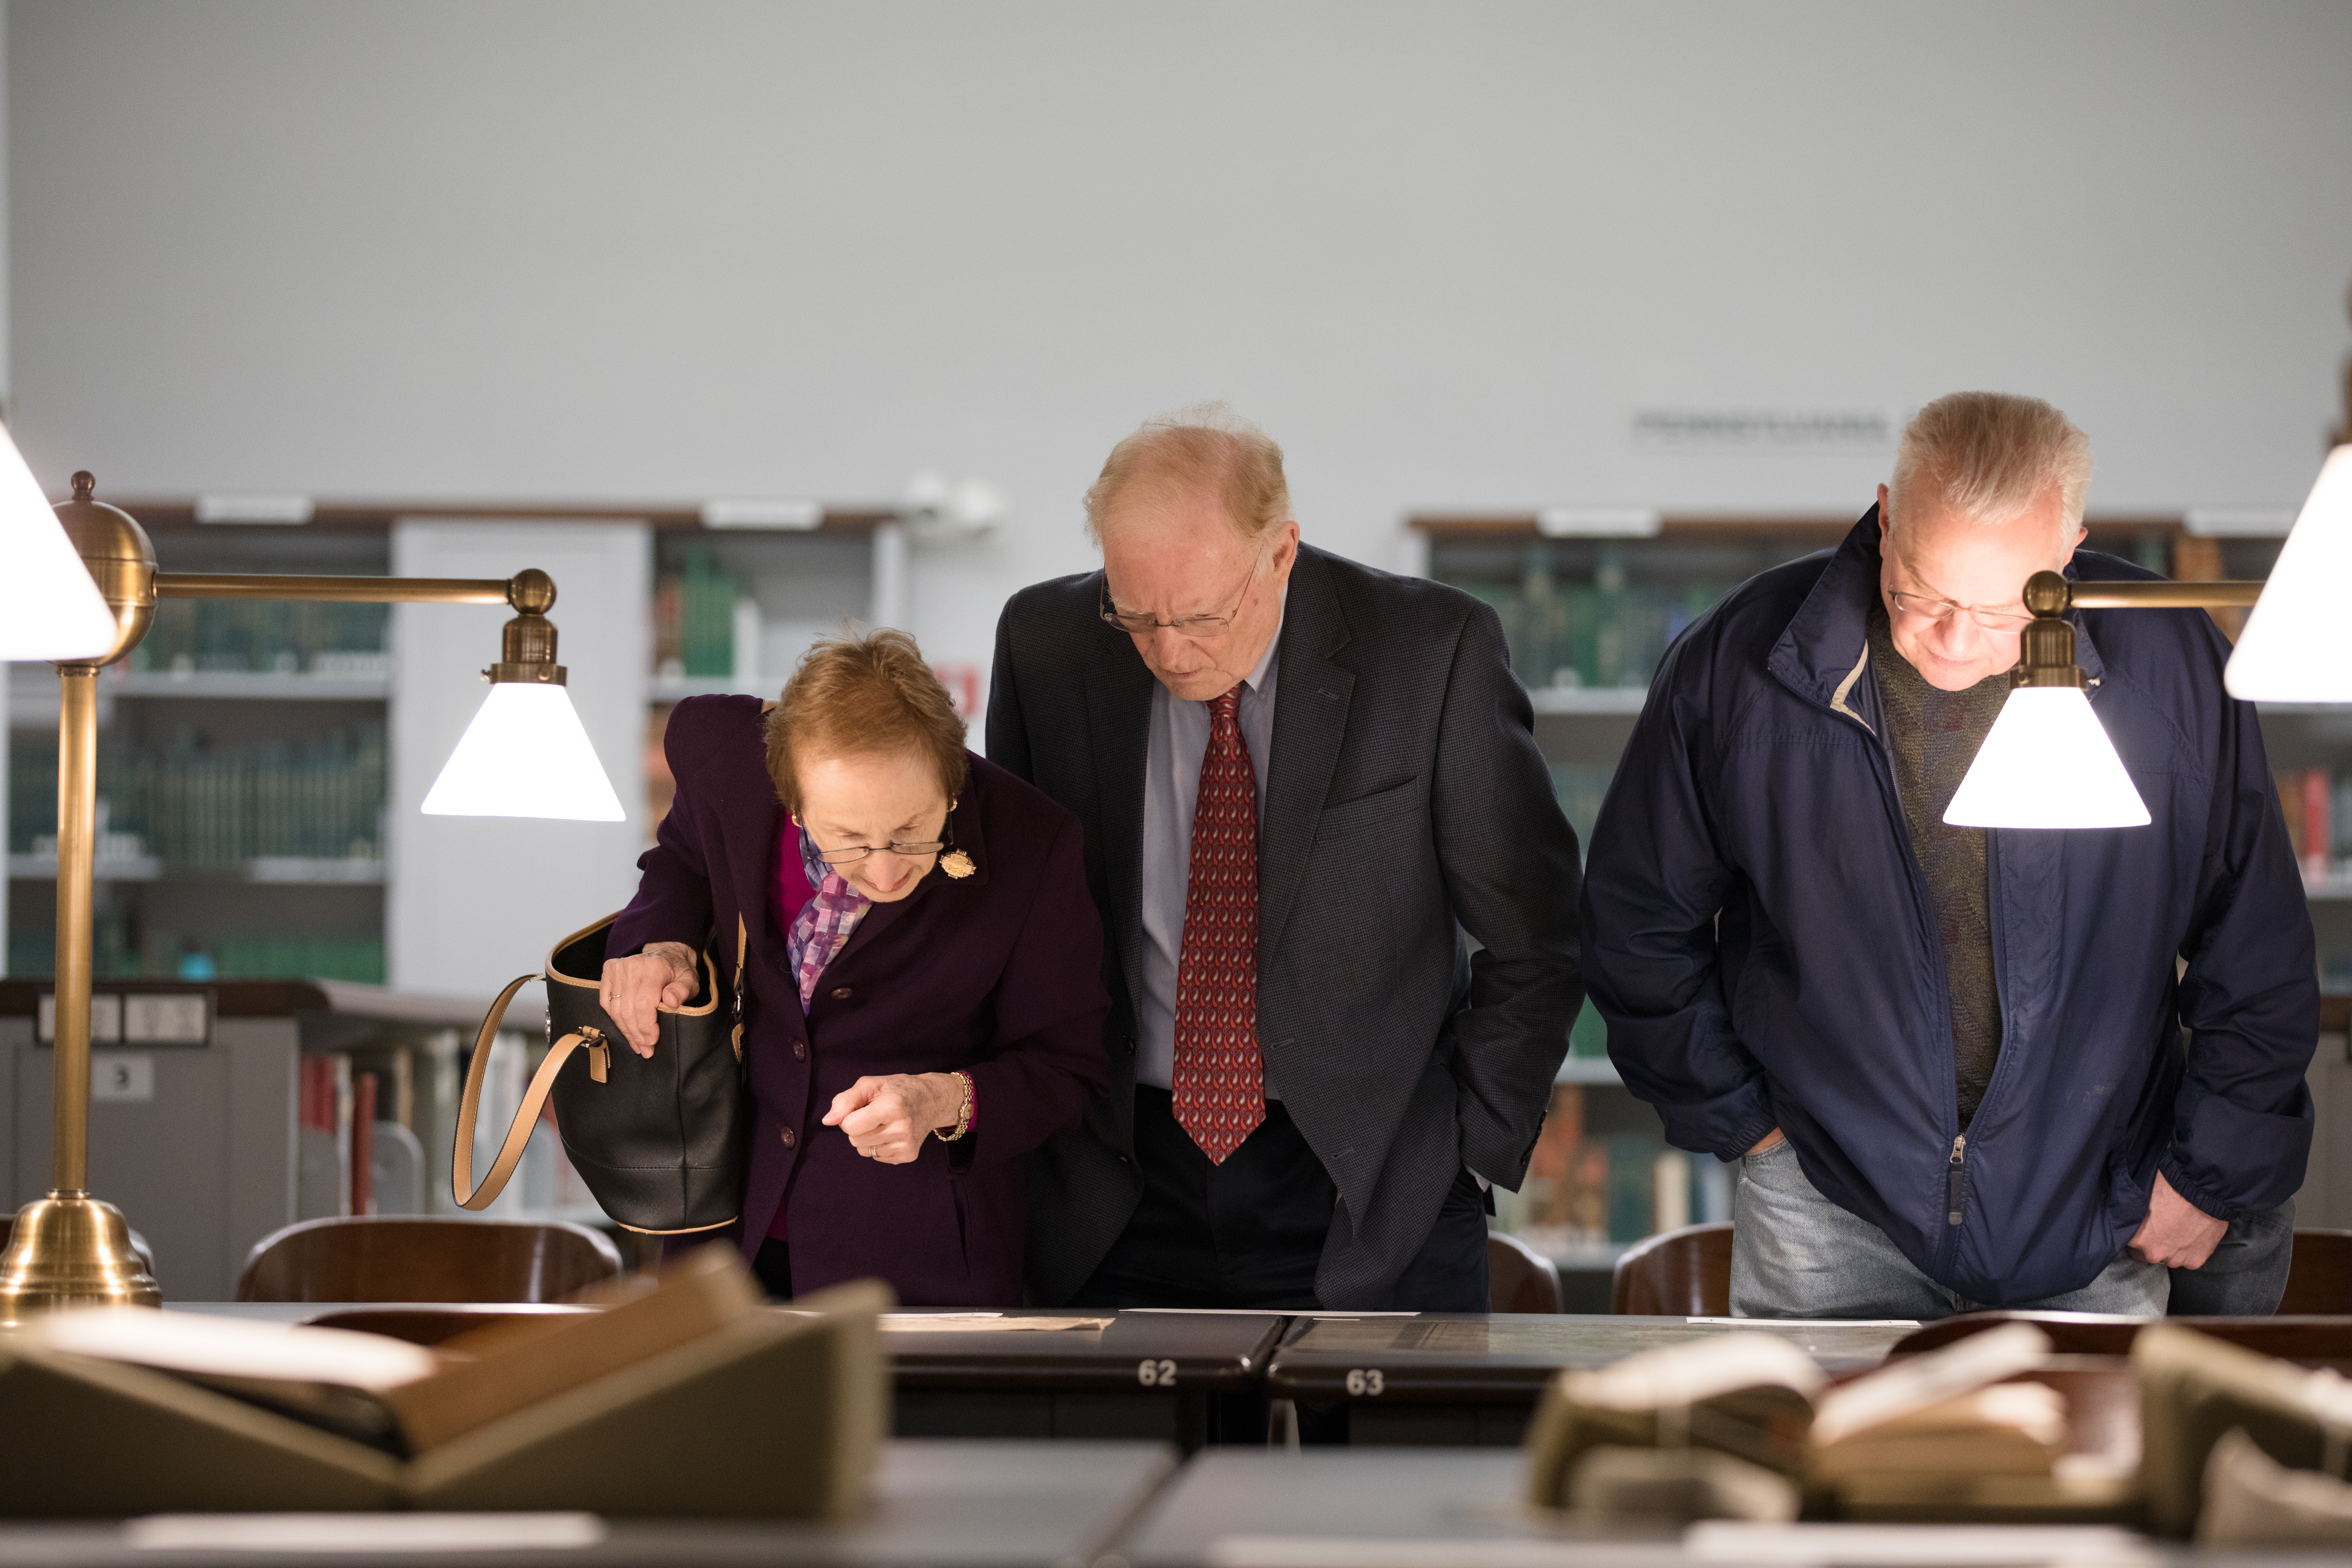 Guests browsing through Austrian-American documents